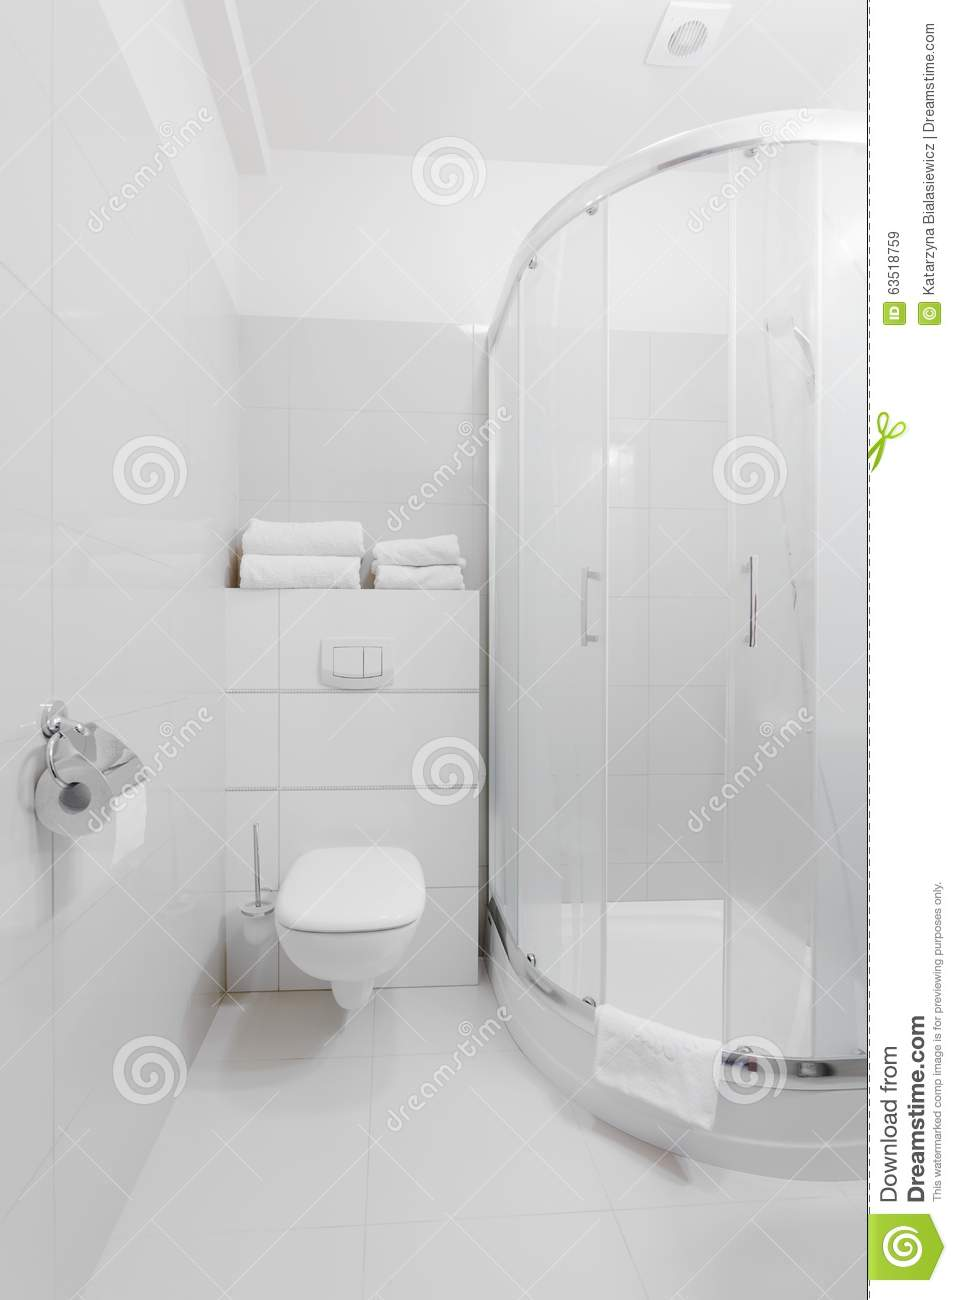 Pure white bathroom design stock image. Image of toilet - 63518759